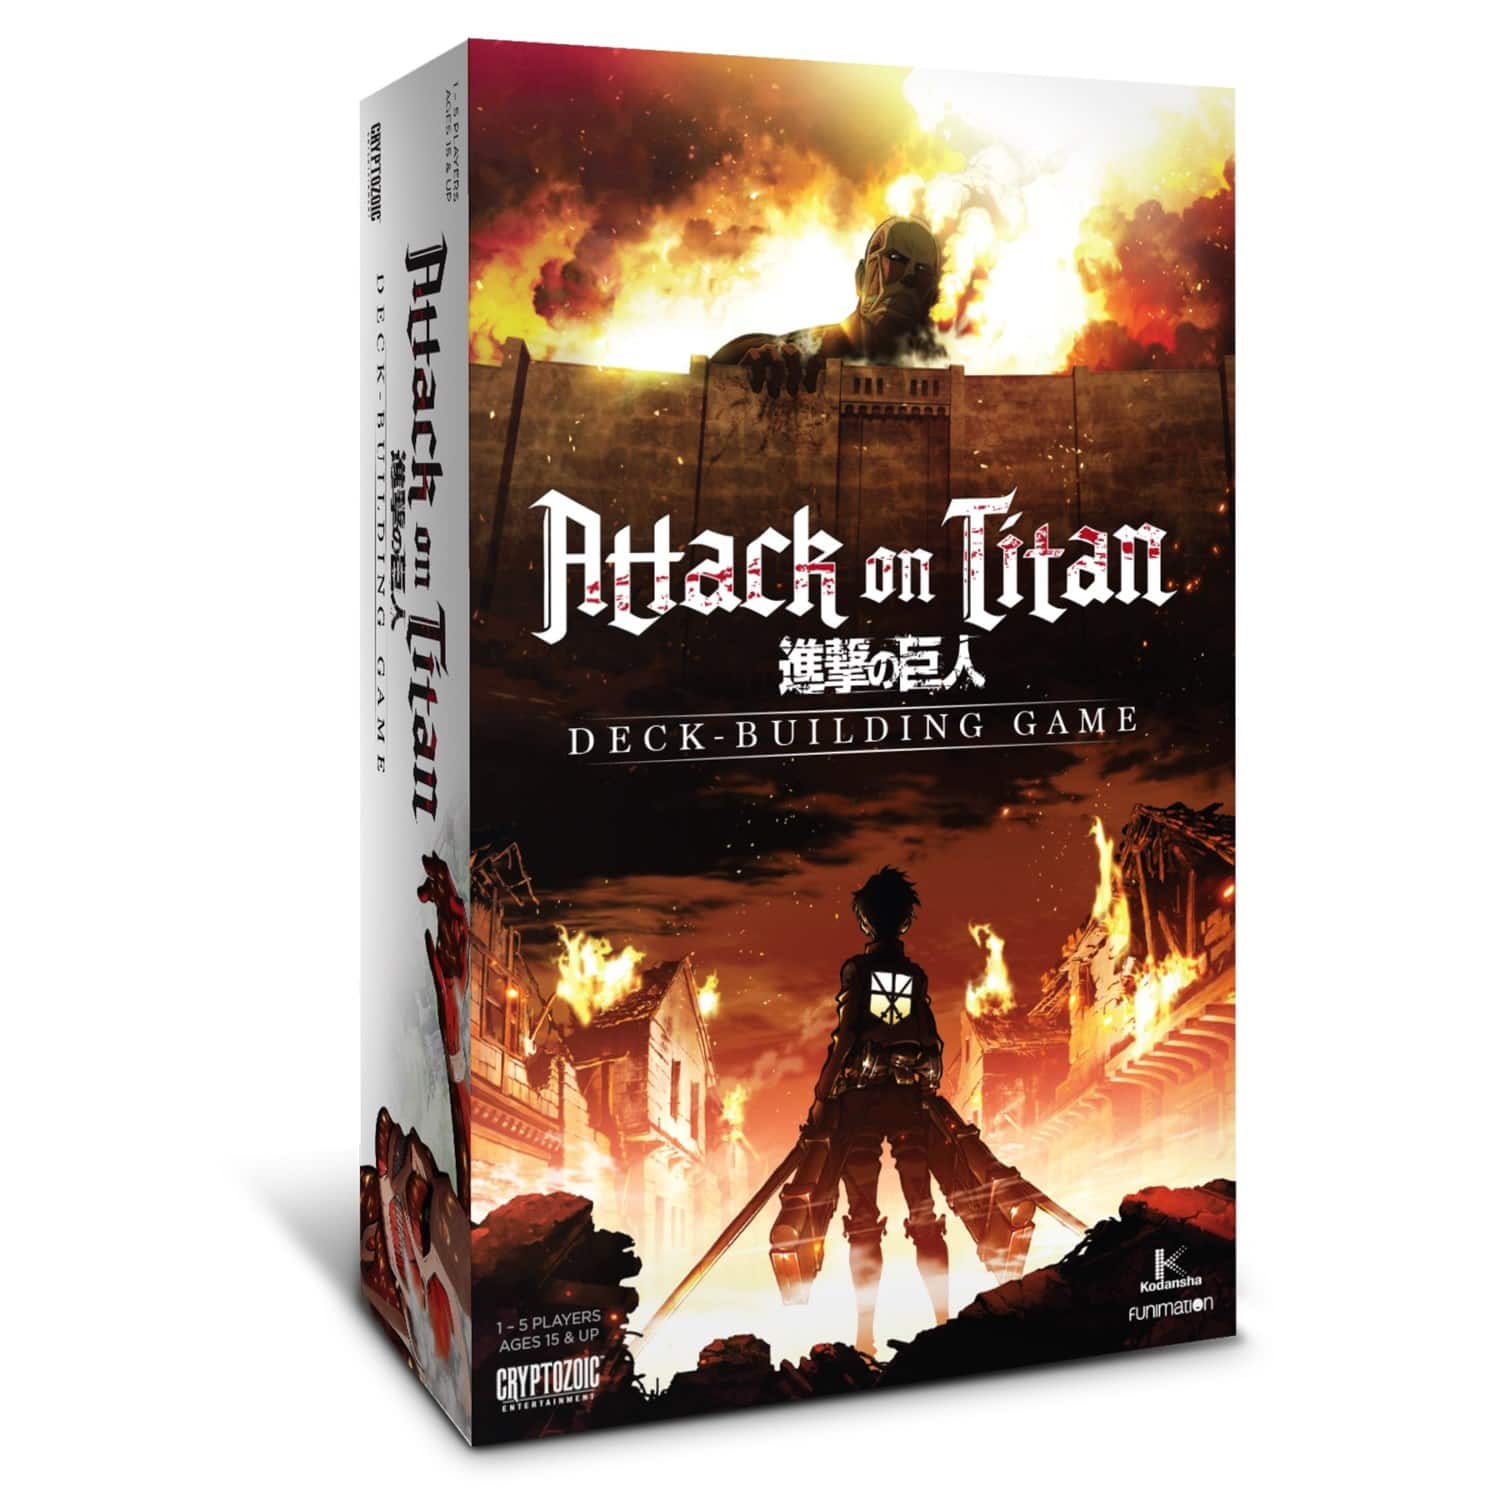 Attack on Titan Deck-Building Game $19.99 + Free shipping